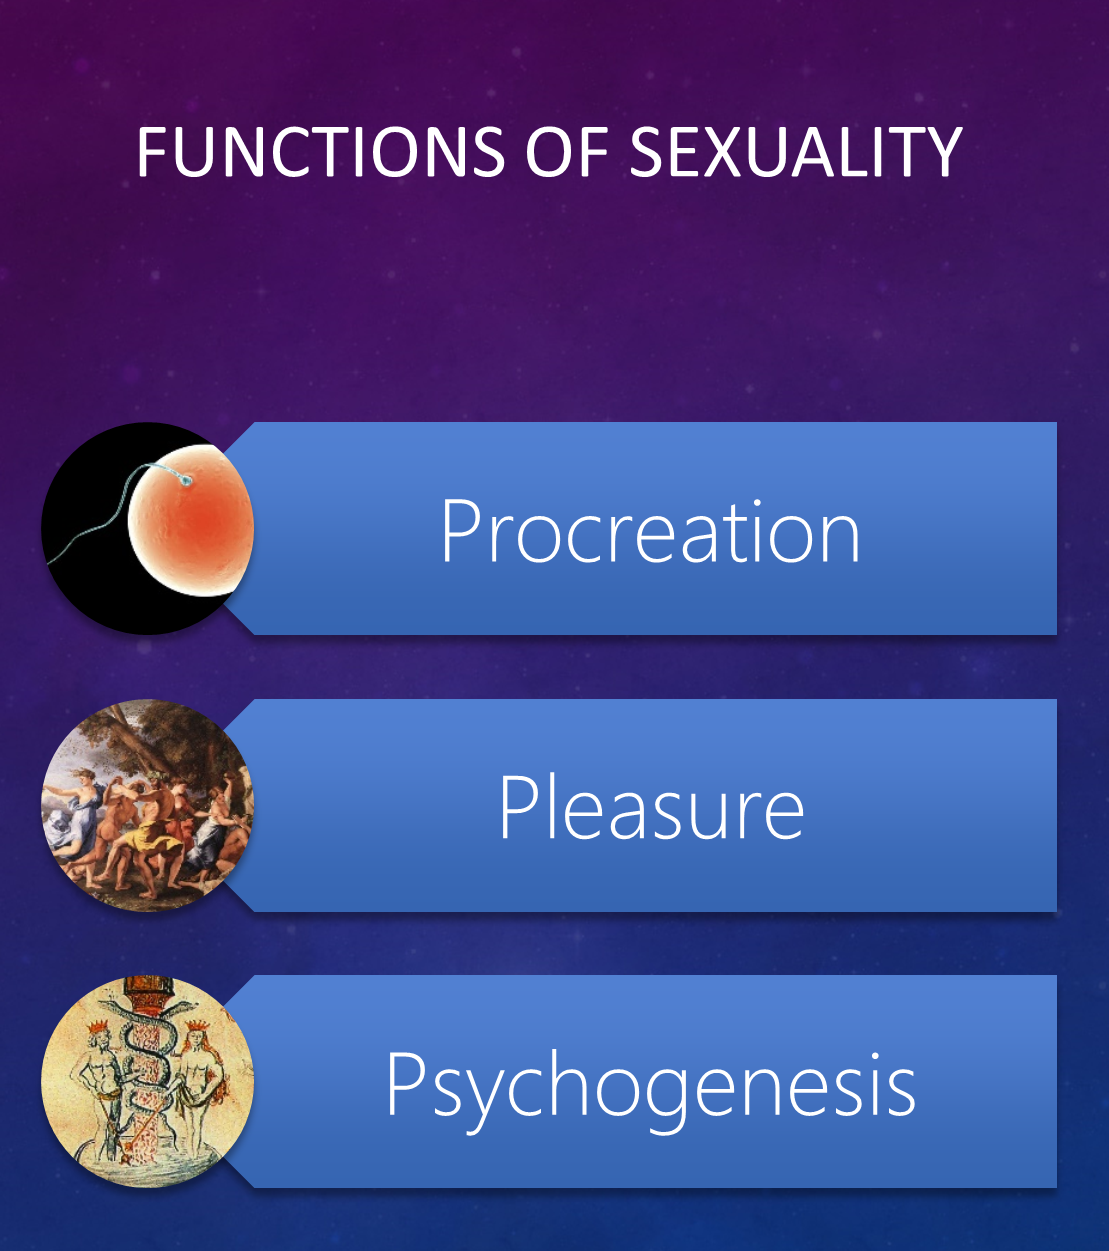 Functions of Sexuality